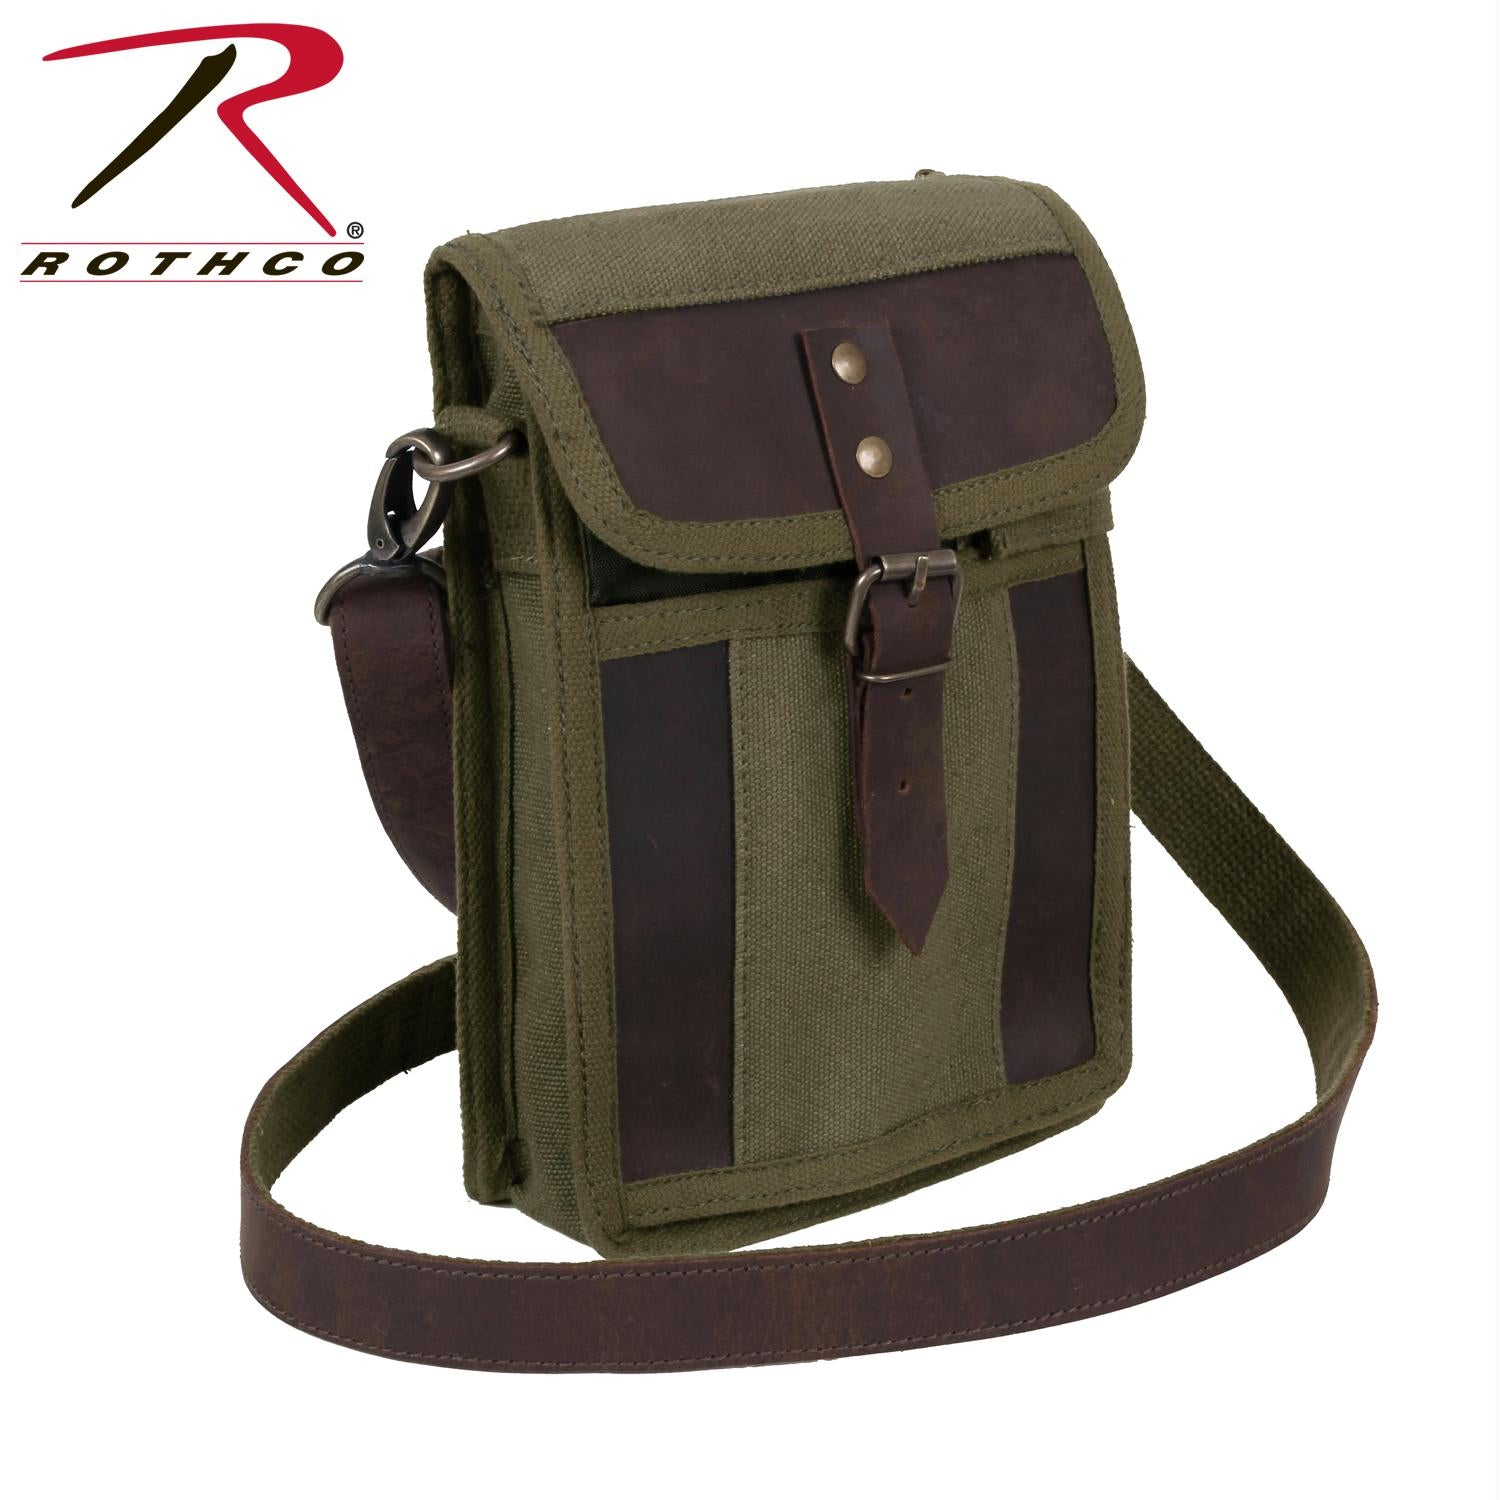 Rothco Canvas Travel Portfolio Bag With Leather Accents - Olive Drab / One Size